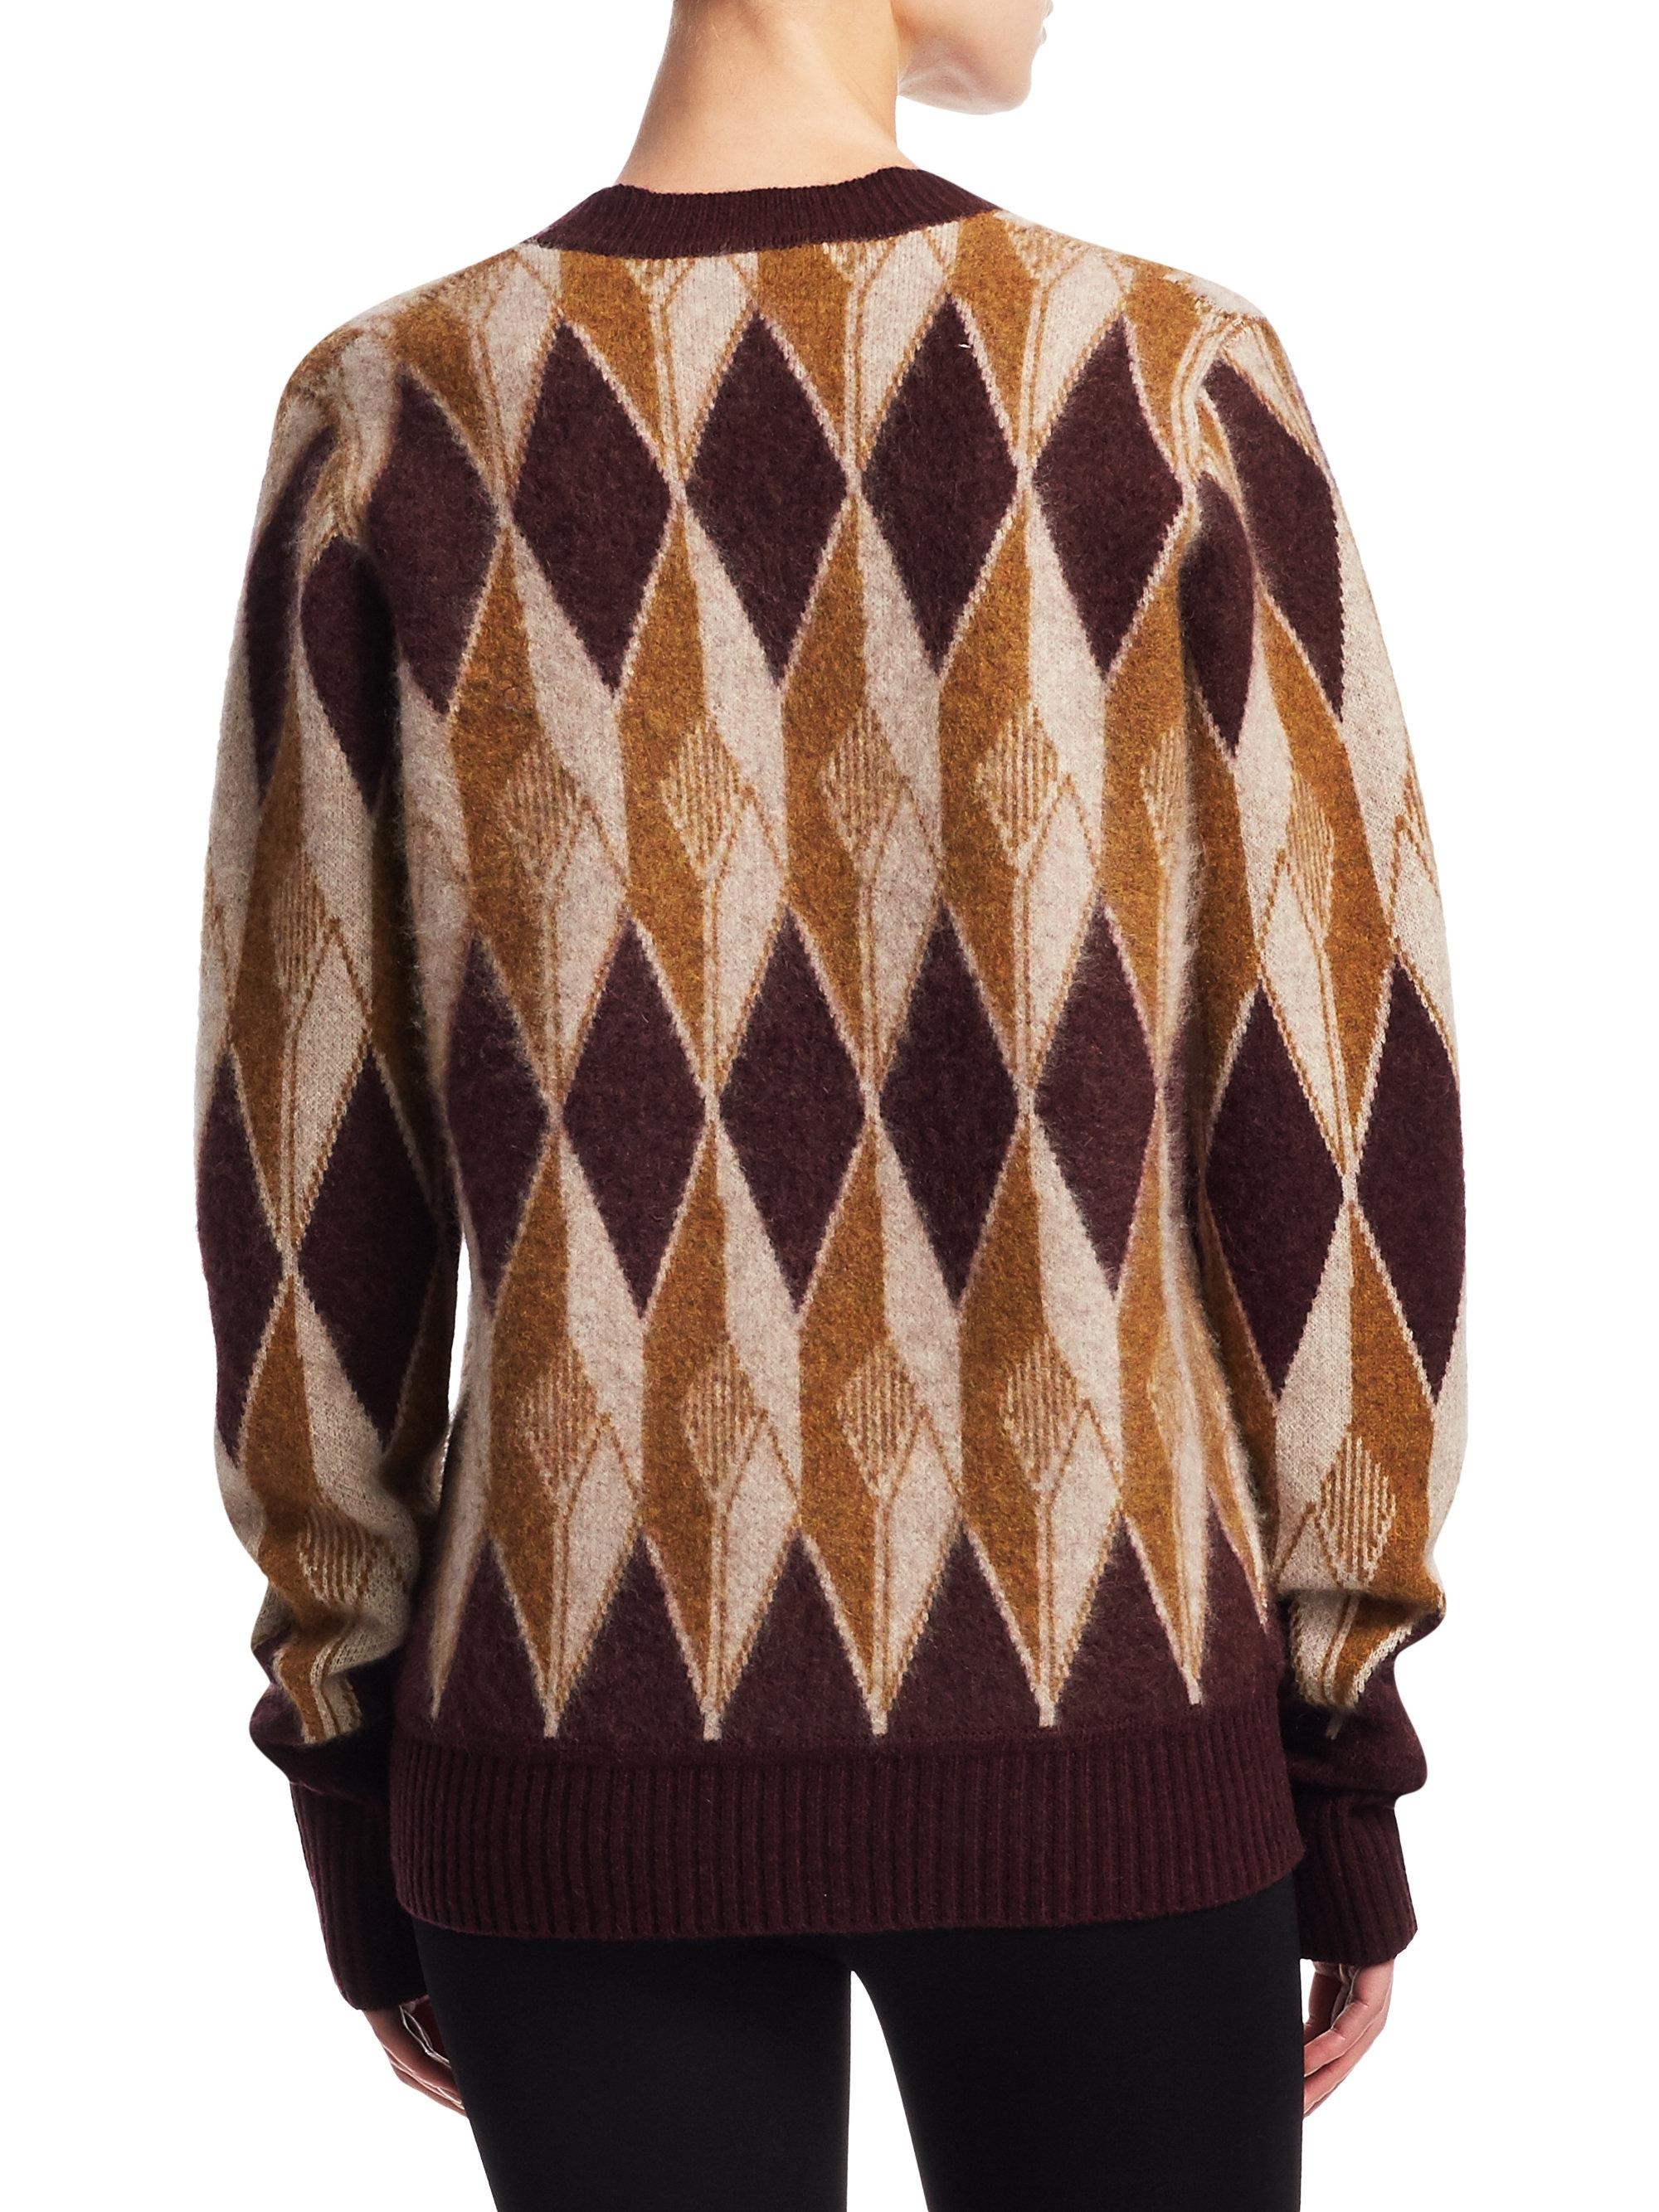 Marc jacobs Patterned Cashmere Cardigan in Purple | Lyst